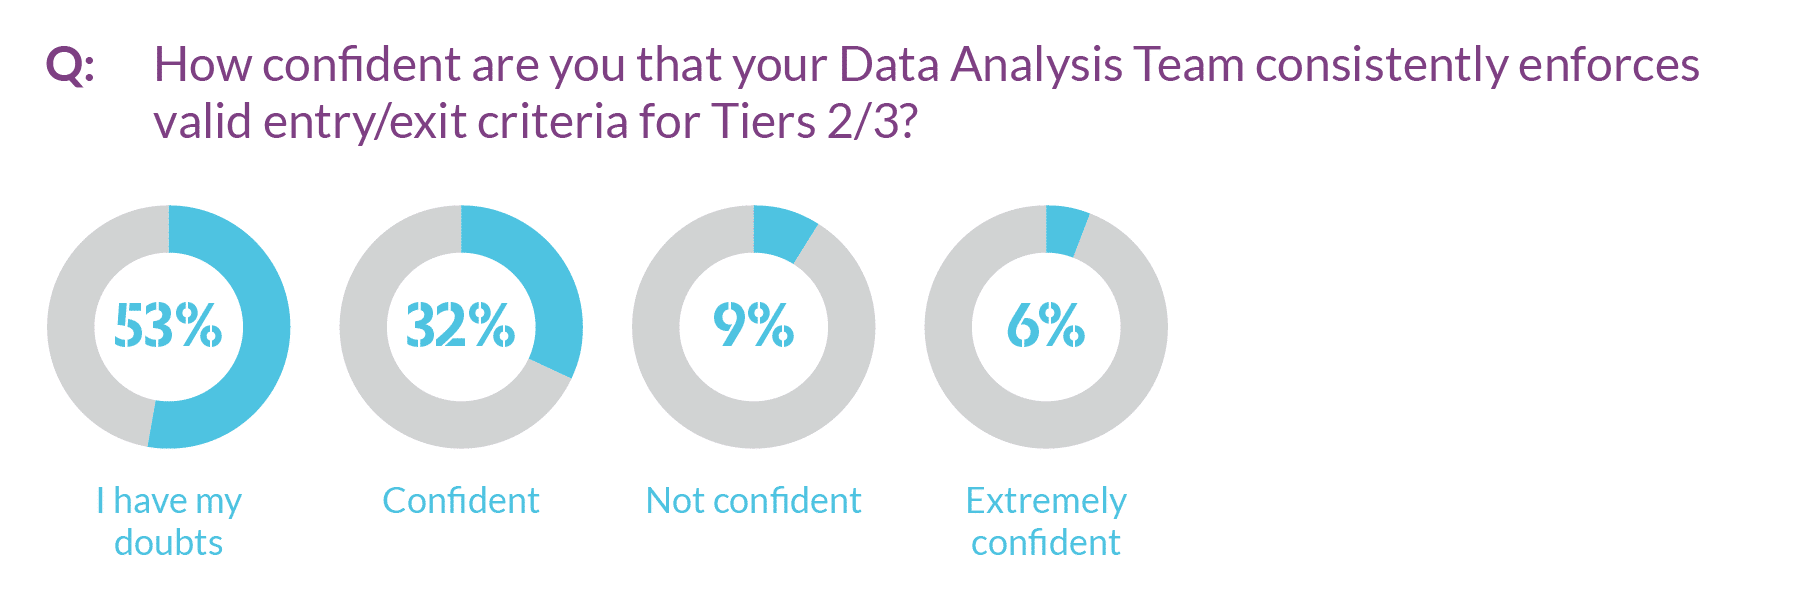 Graph showing districts' confidence that their Data Analysis Teams enforce valid entry/exit criteria for Tiers 2/3